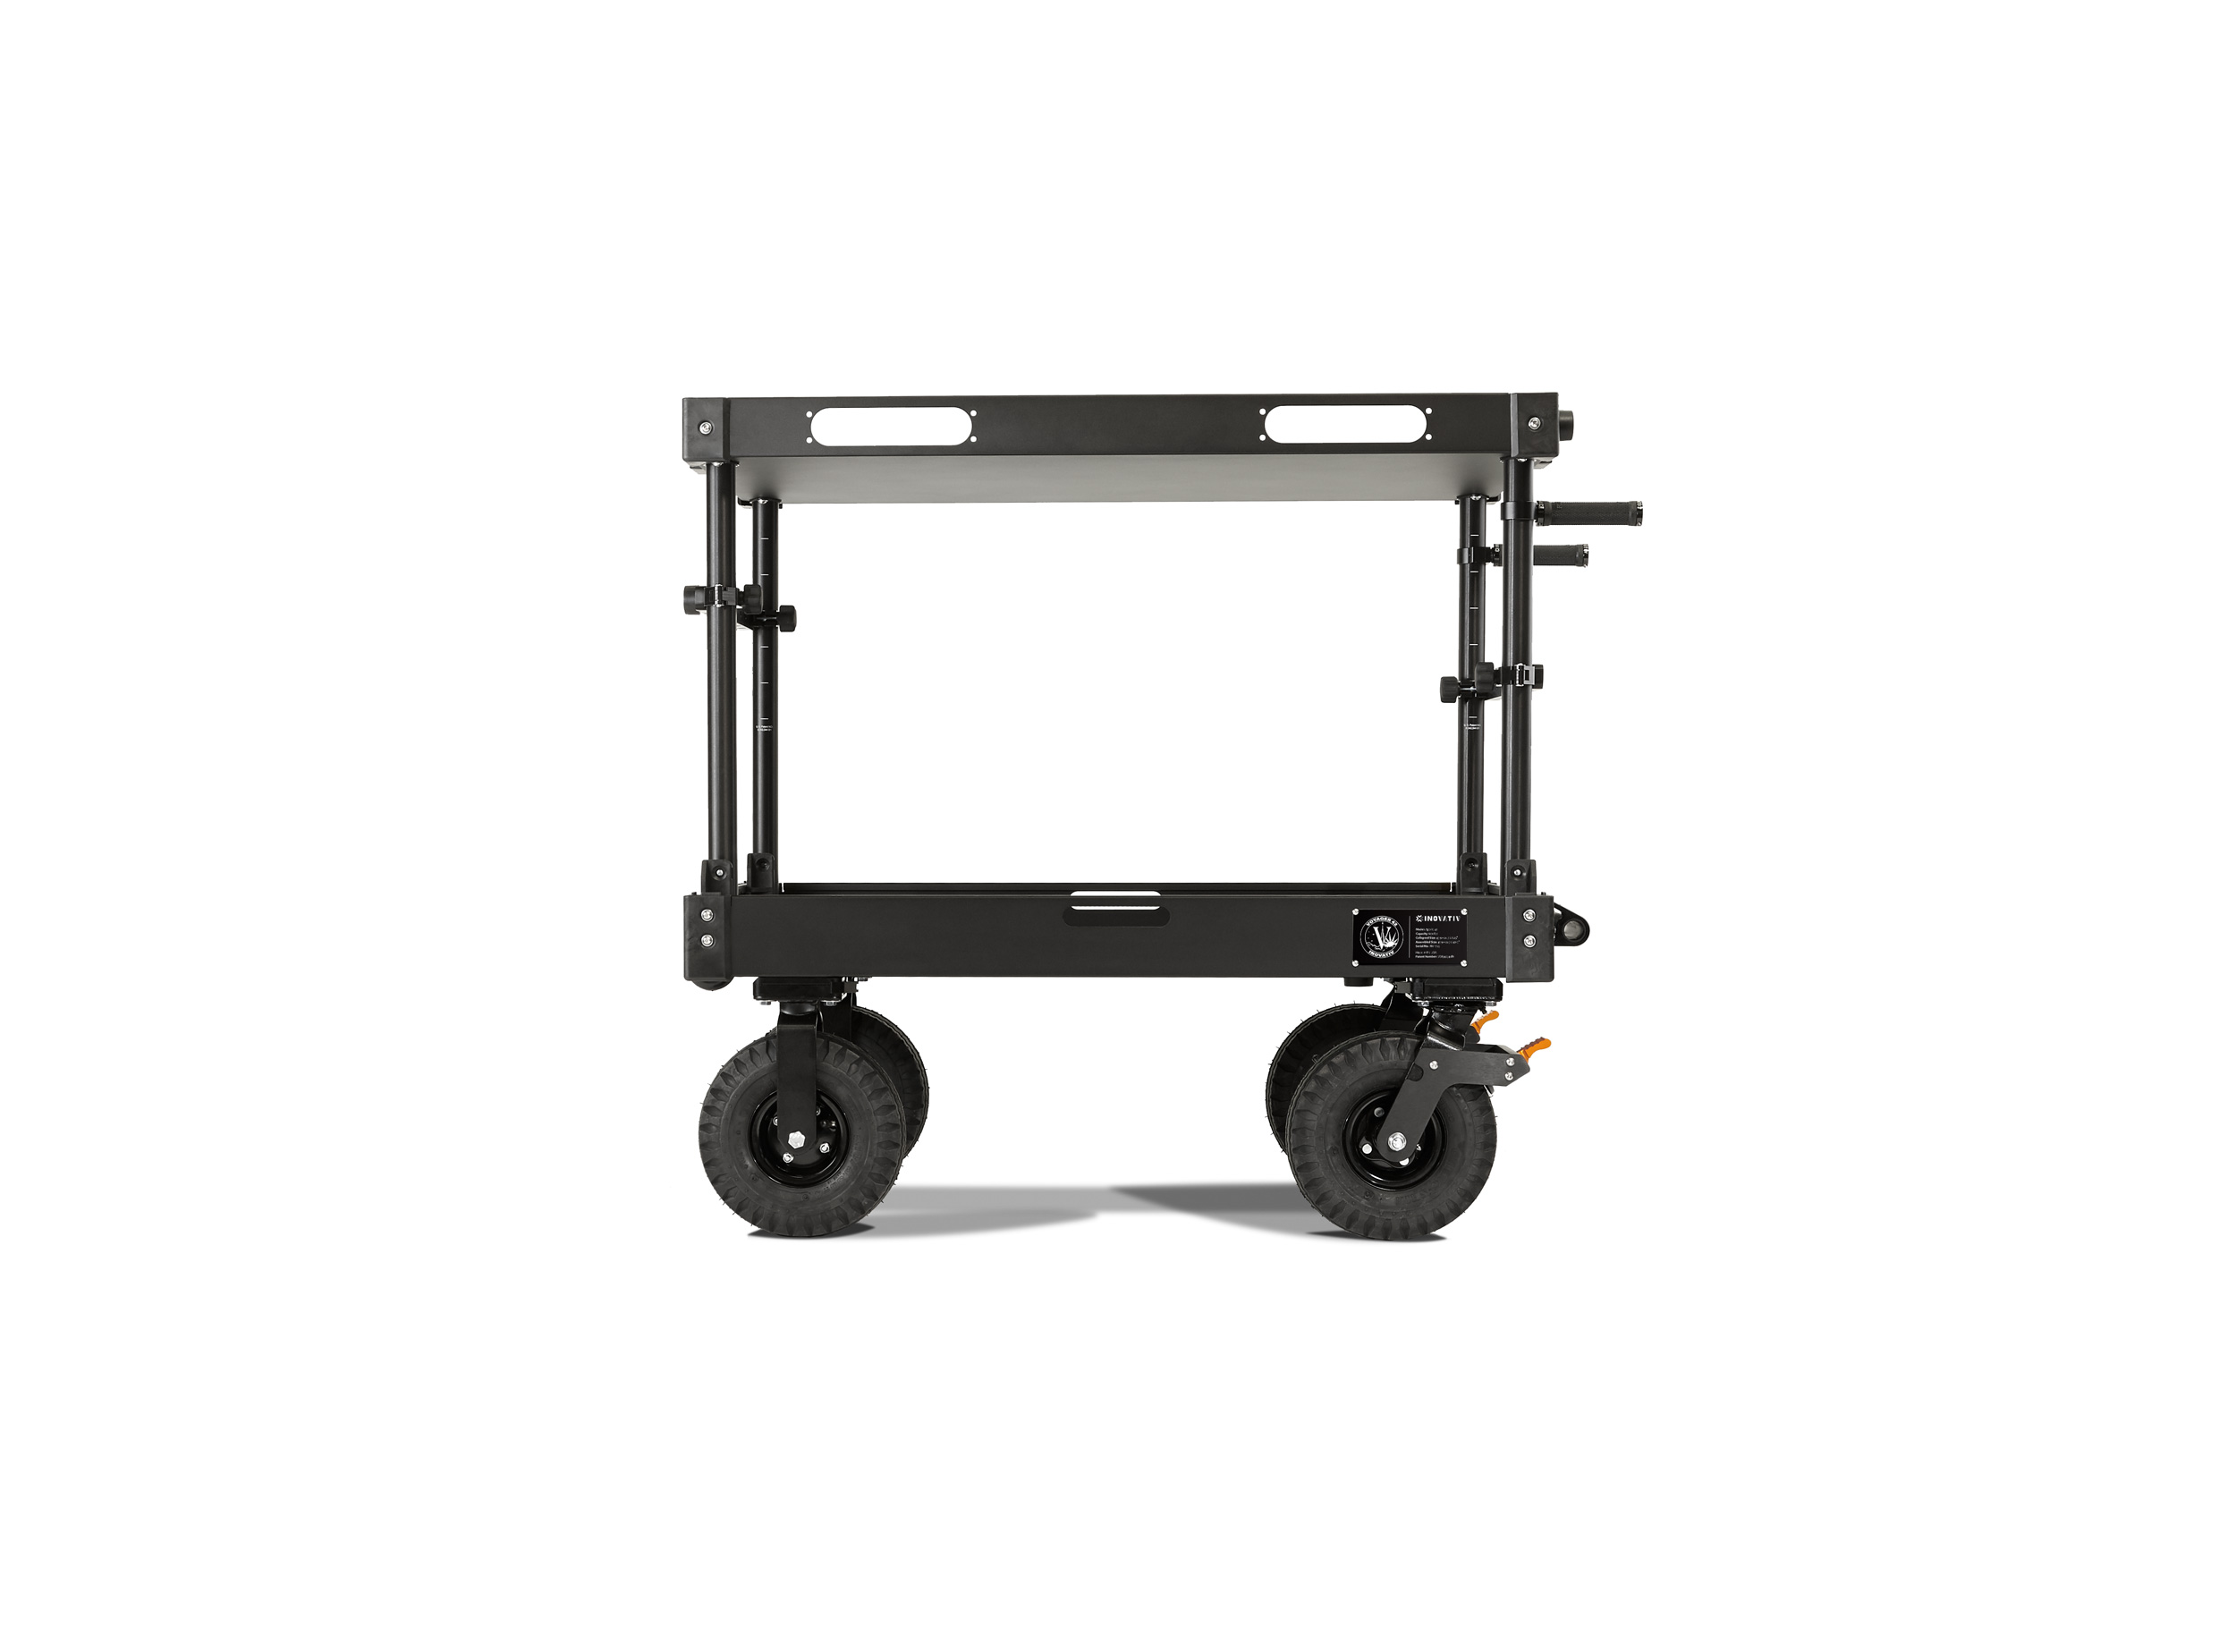 Voyager NXT cart